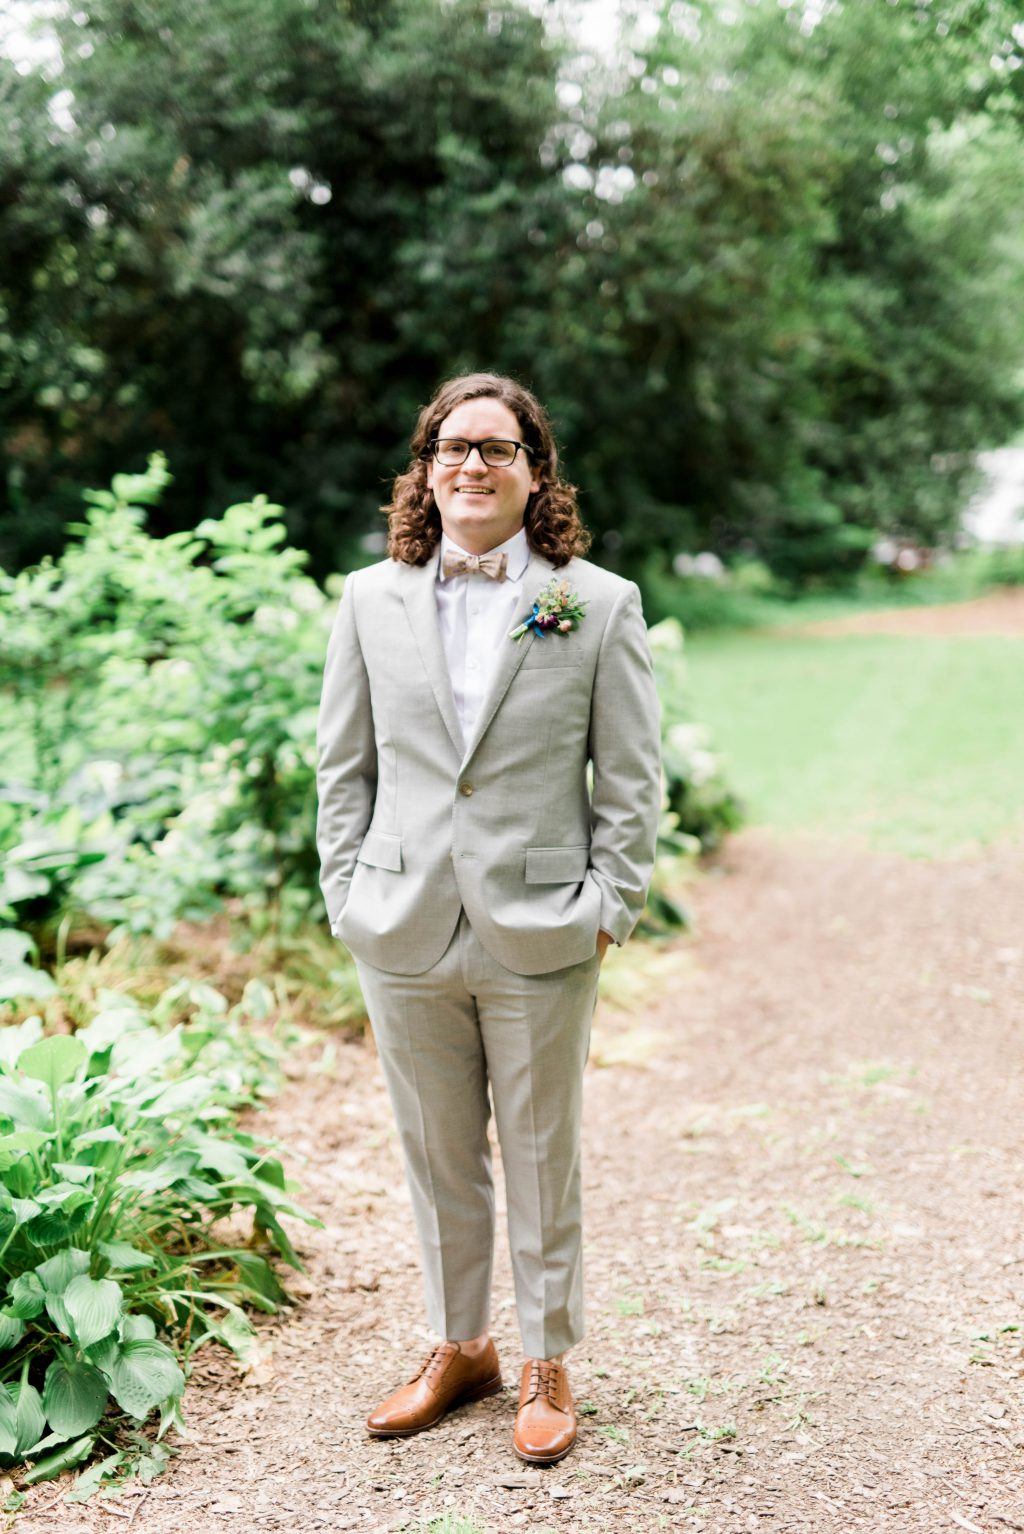 awbury-arboretum-wedding-DIY-boho-summer-haley-richter-photography-060